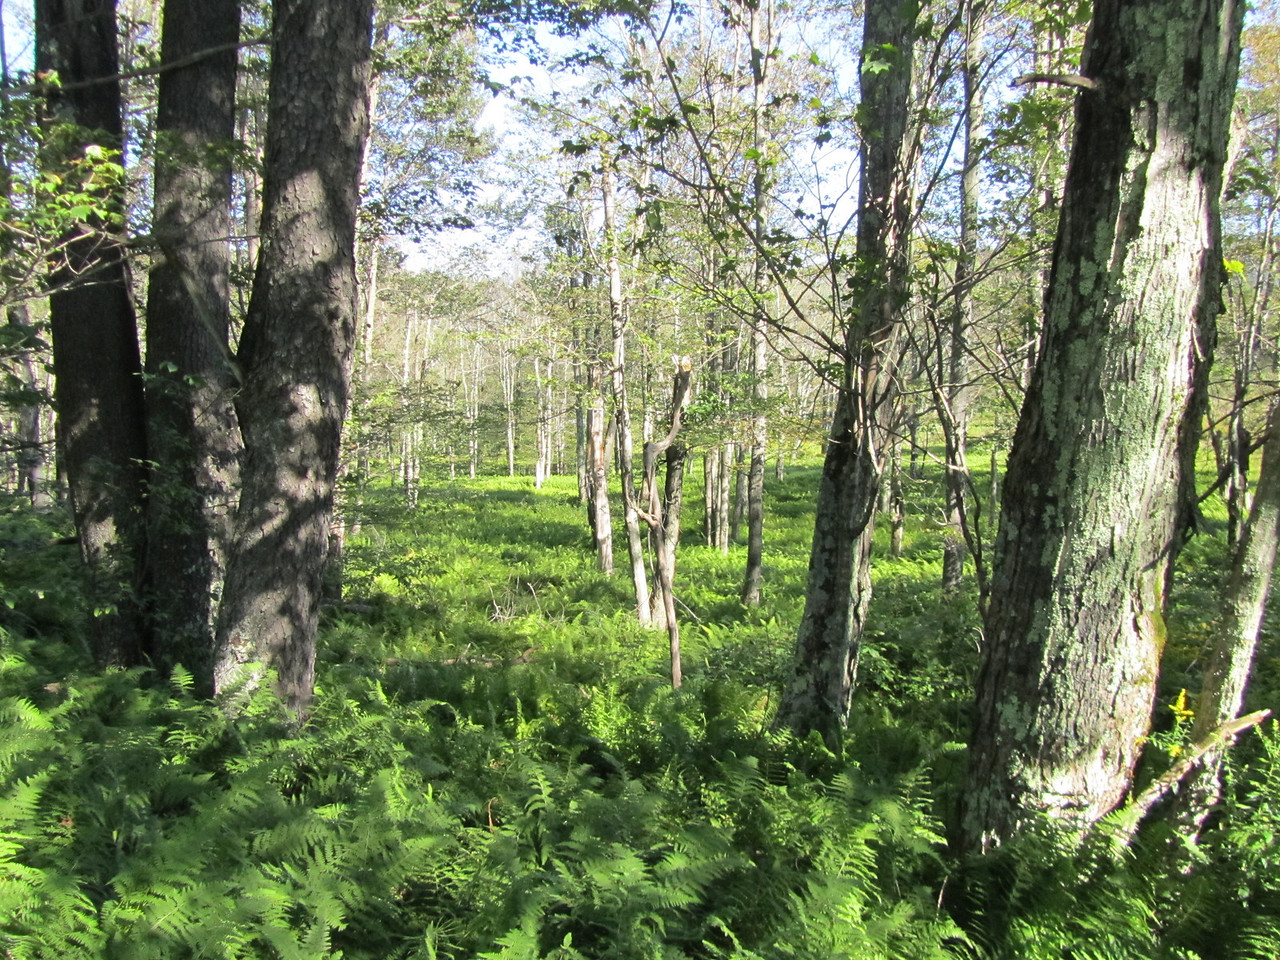 The woods were filled with ferms and looked beautiful. Unfortunately, we learned in Master Forested Volunteer Class that this is not a healthy patch of woods as the ferms choke out any tree trying to grow. Left alone, these woods will die.